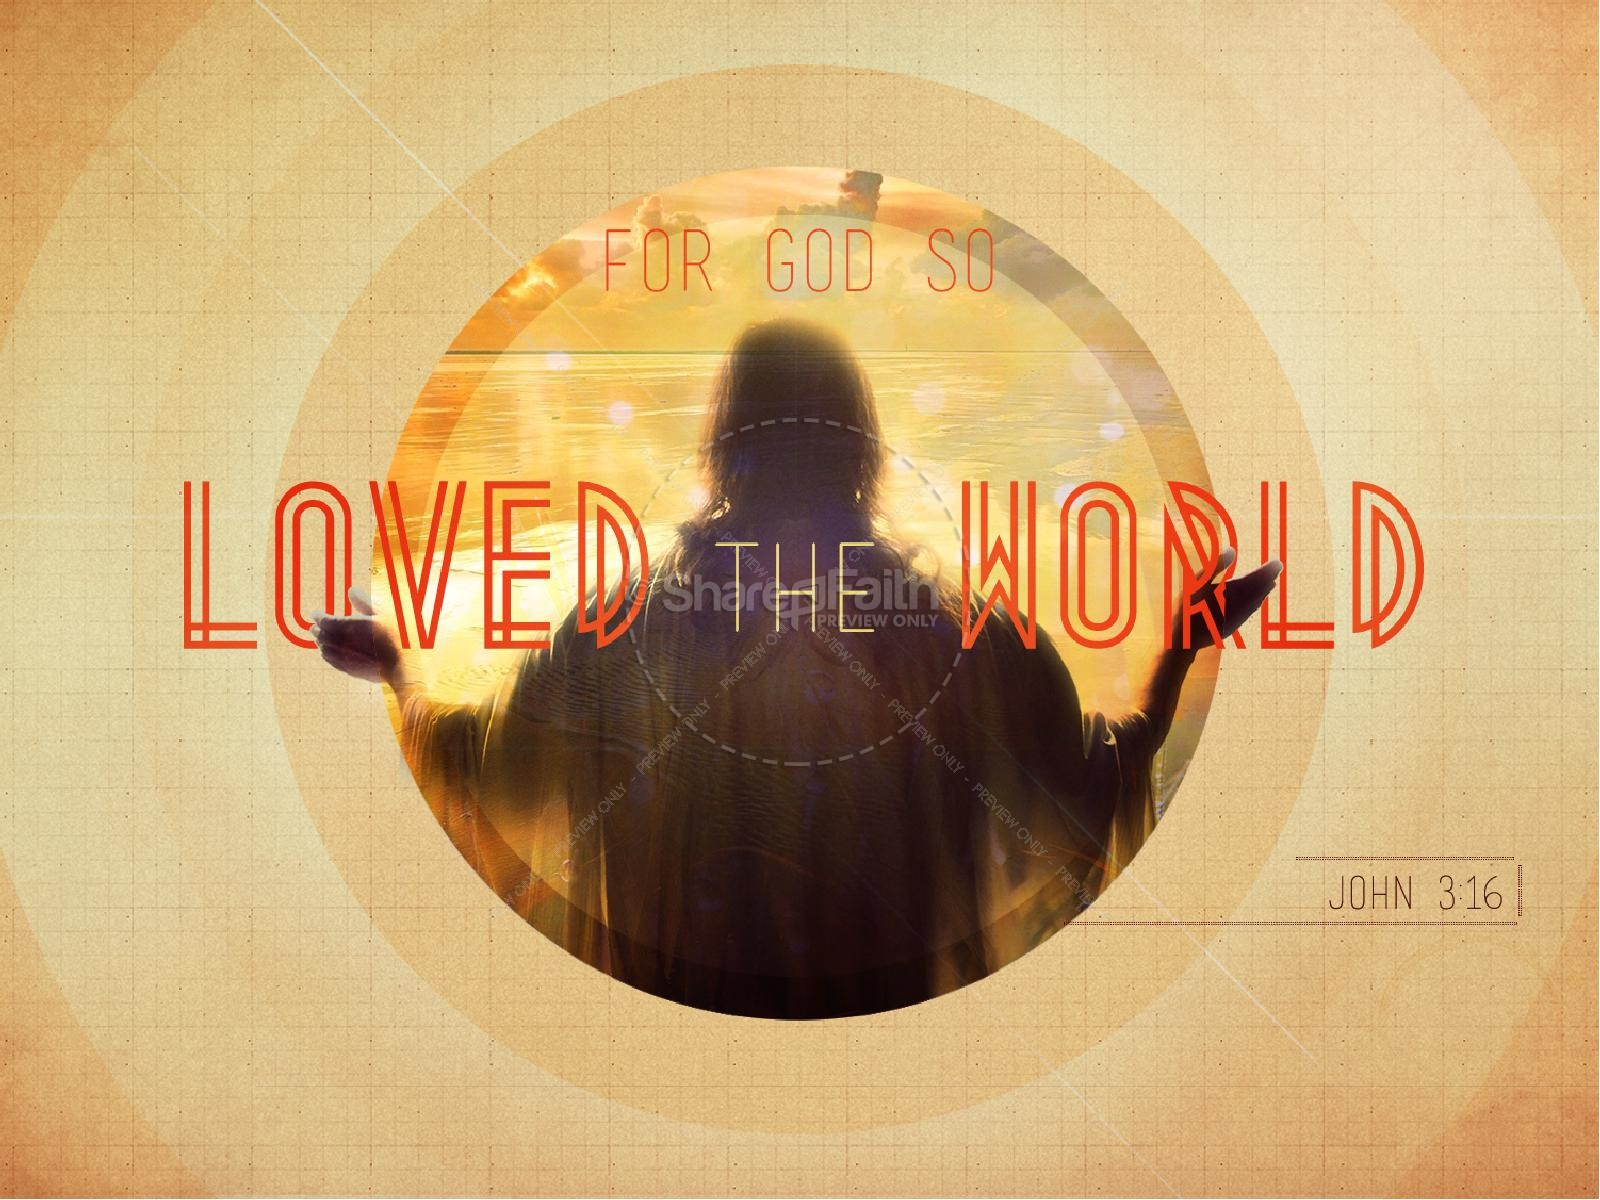 God So Loved the World PowerPoint Sermon | slide 1